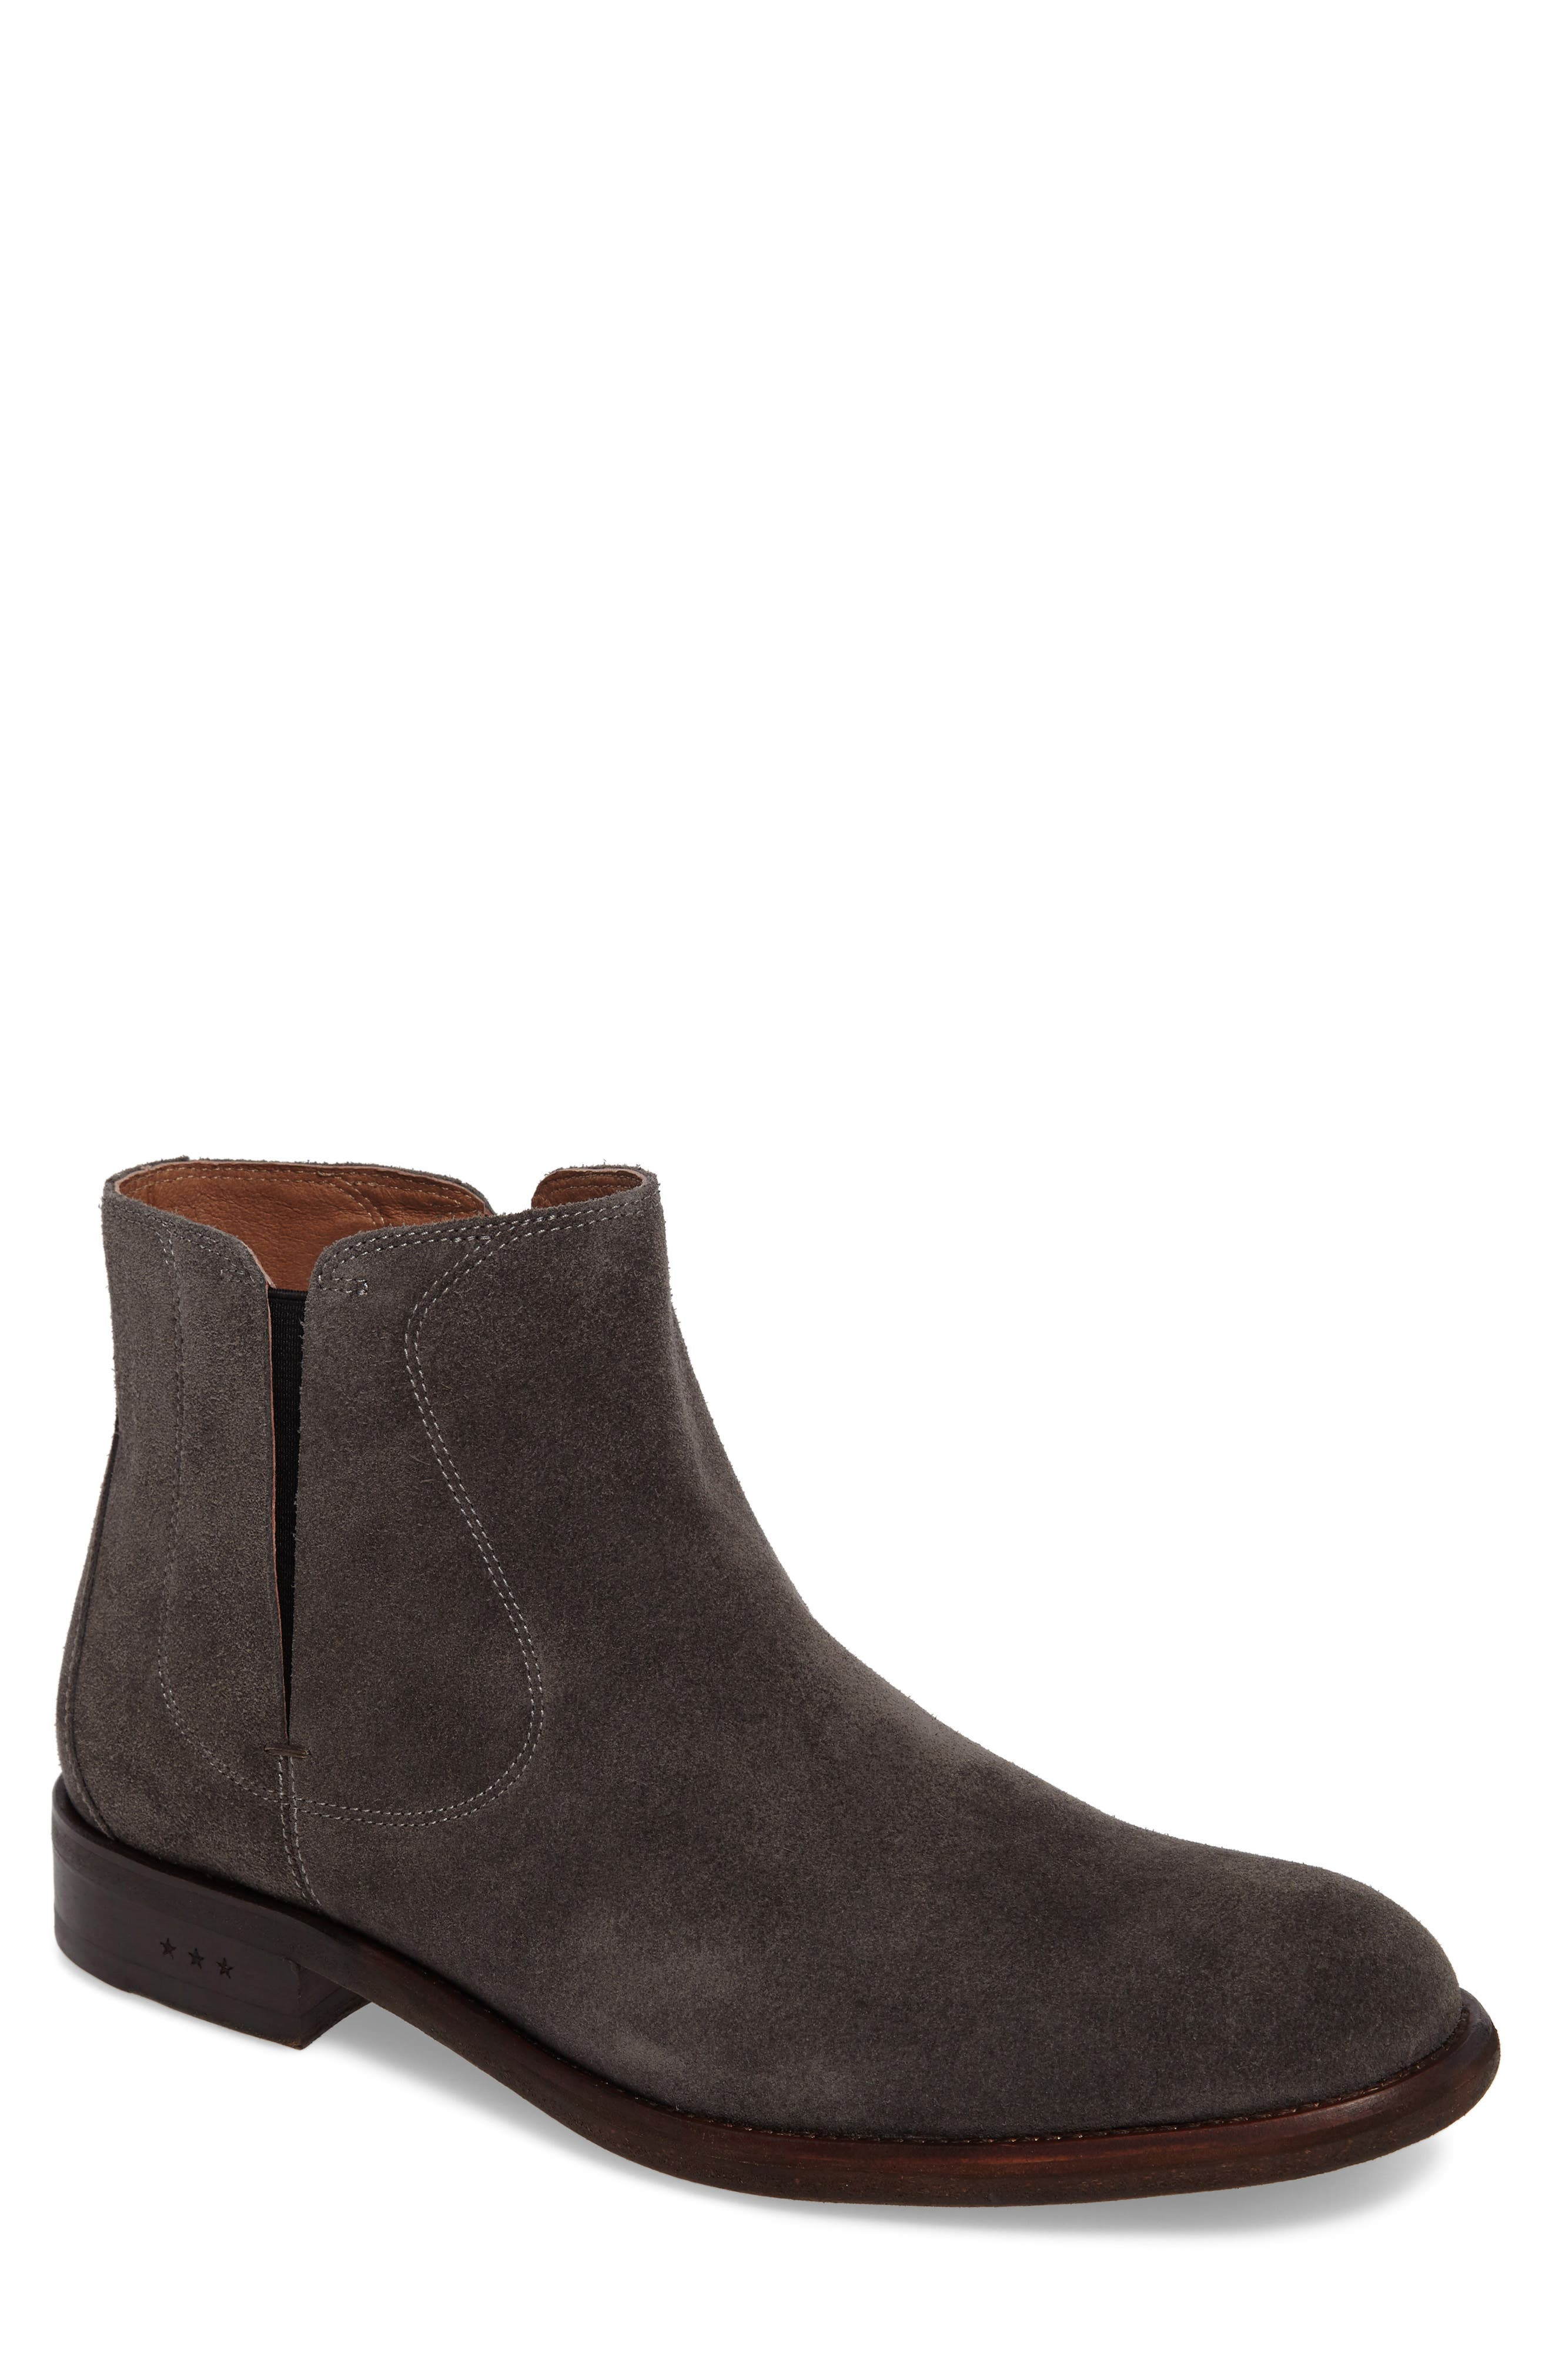 John Varvatos Men's Waverley Chelsea Boot O9ZFWyaq